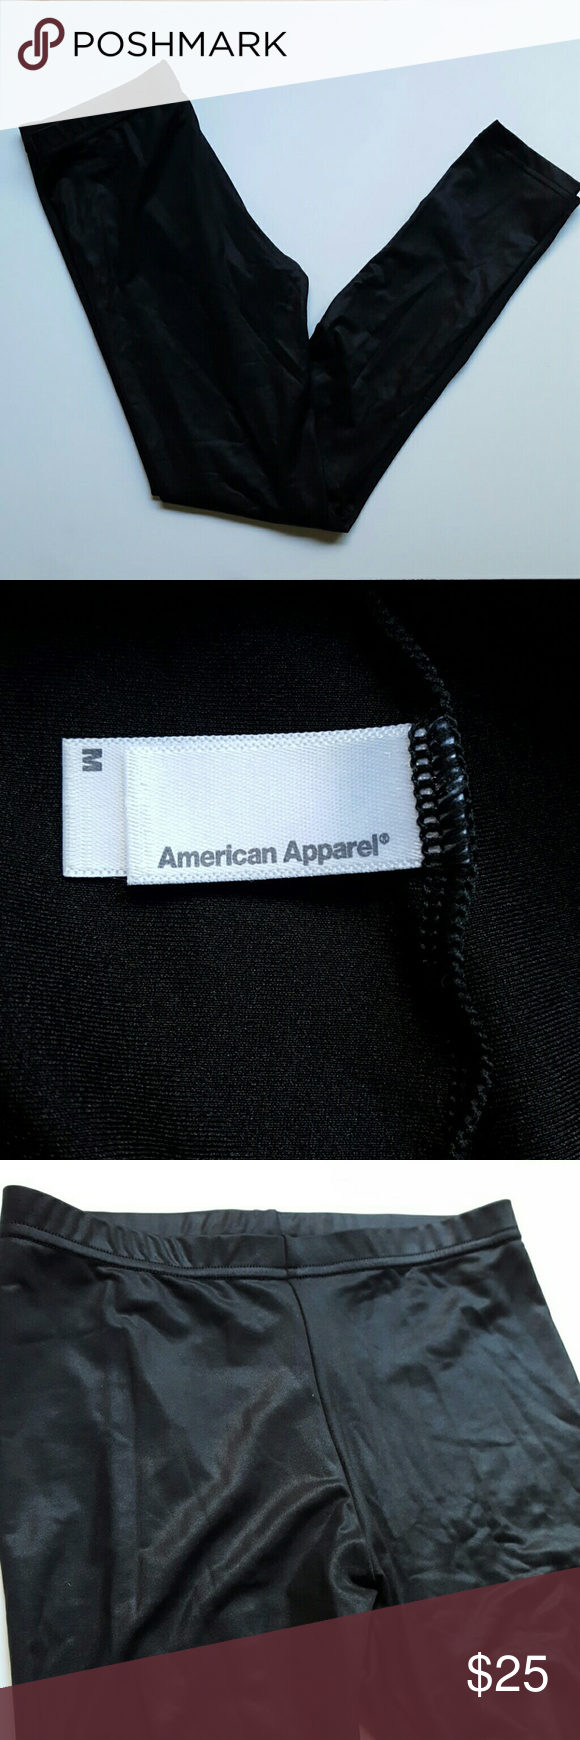 """American Apparel Shiny Black Leggings American Apparel Shiny Black Leggings in size medium. Gently worn. Worn once for a work event. Form fitting with elastic waistband. Approx. 26""""-27"""" inseam. No rips or stains. Wrinkled through out from being in dresser drawer. No trades but reasonable offers are welcomed. American Apparel Pants Leggings"""